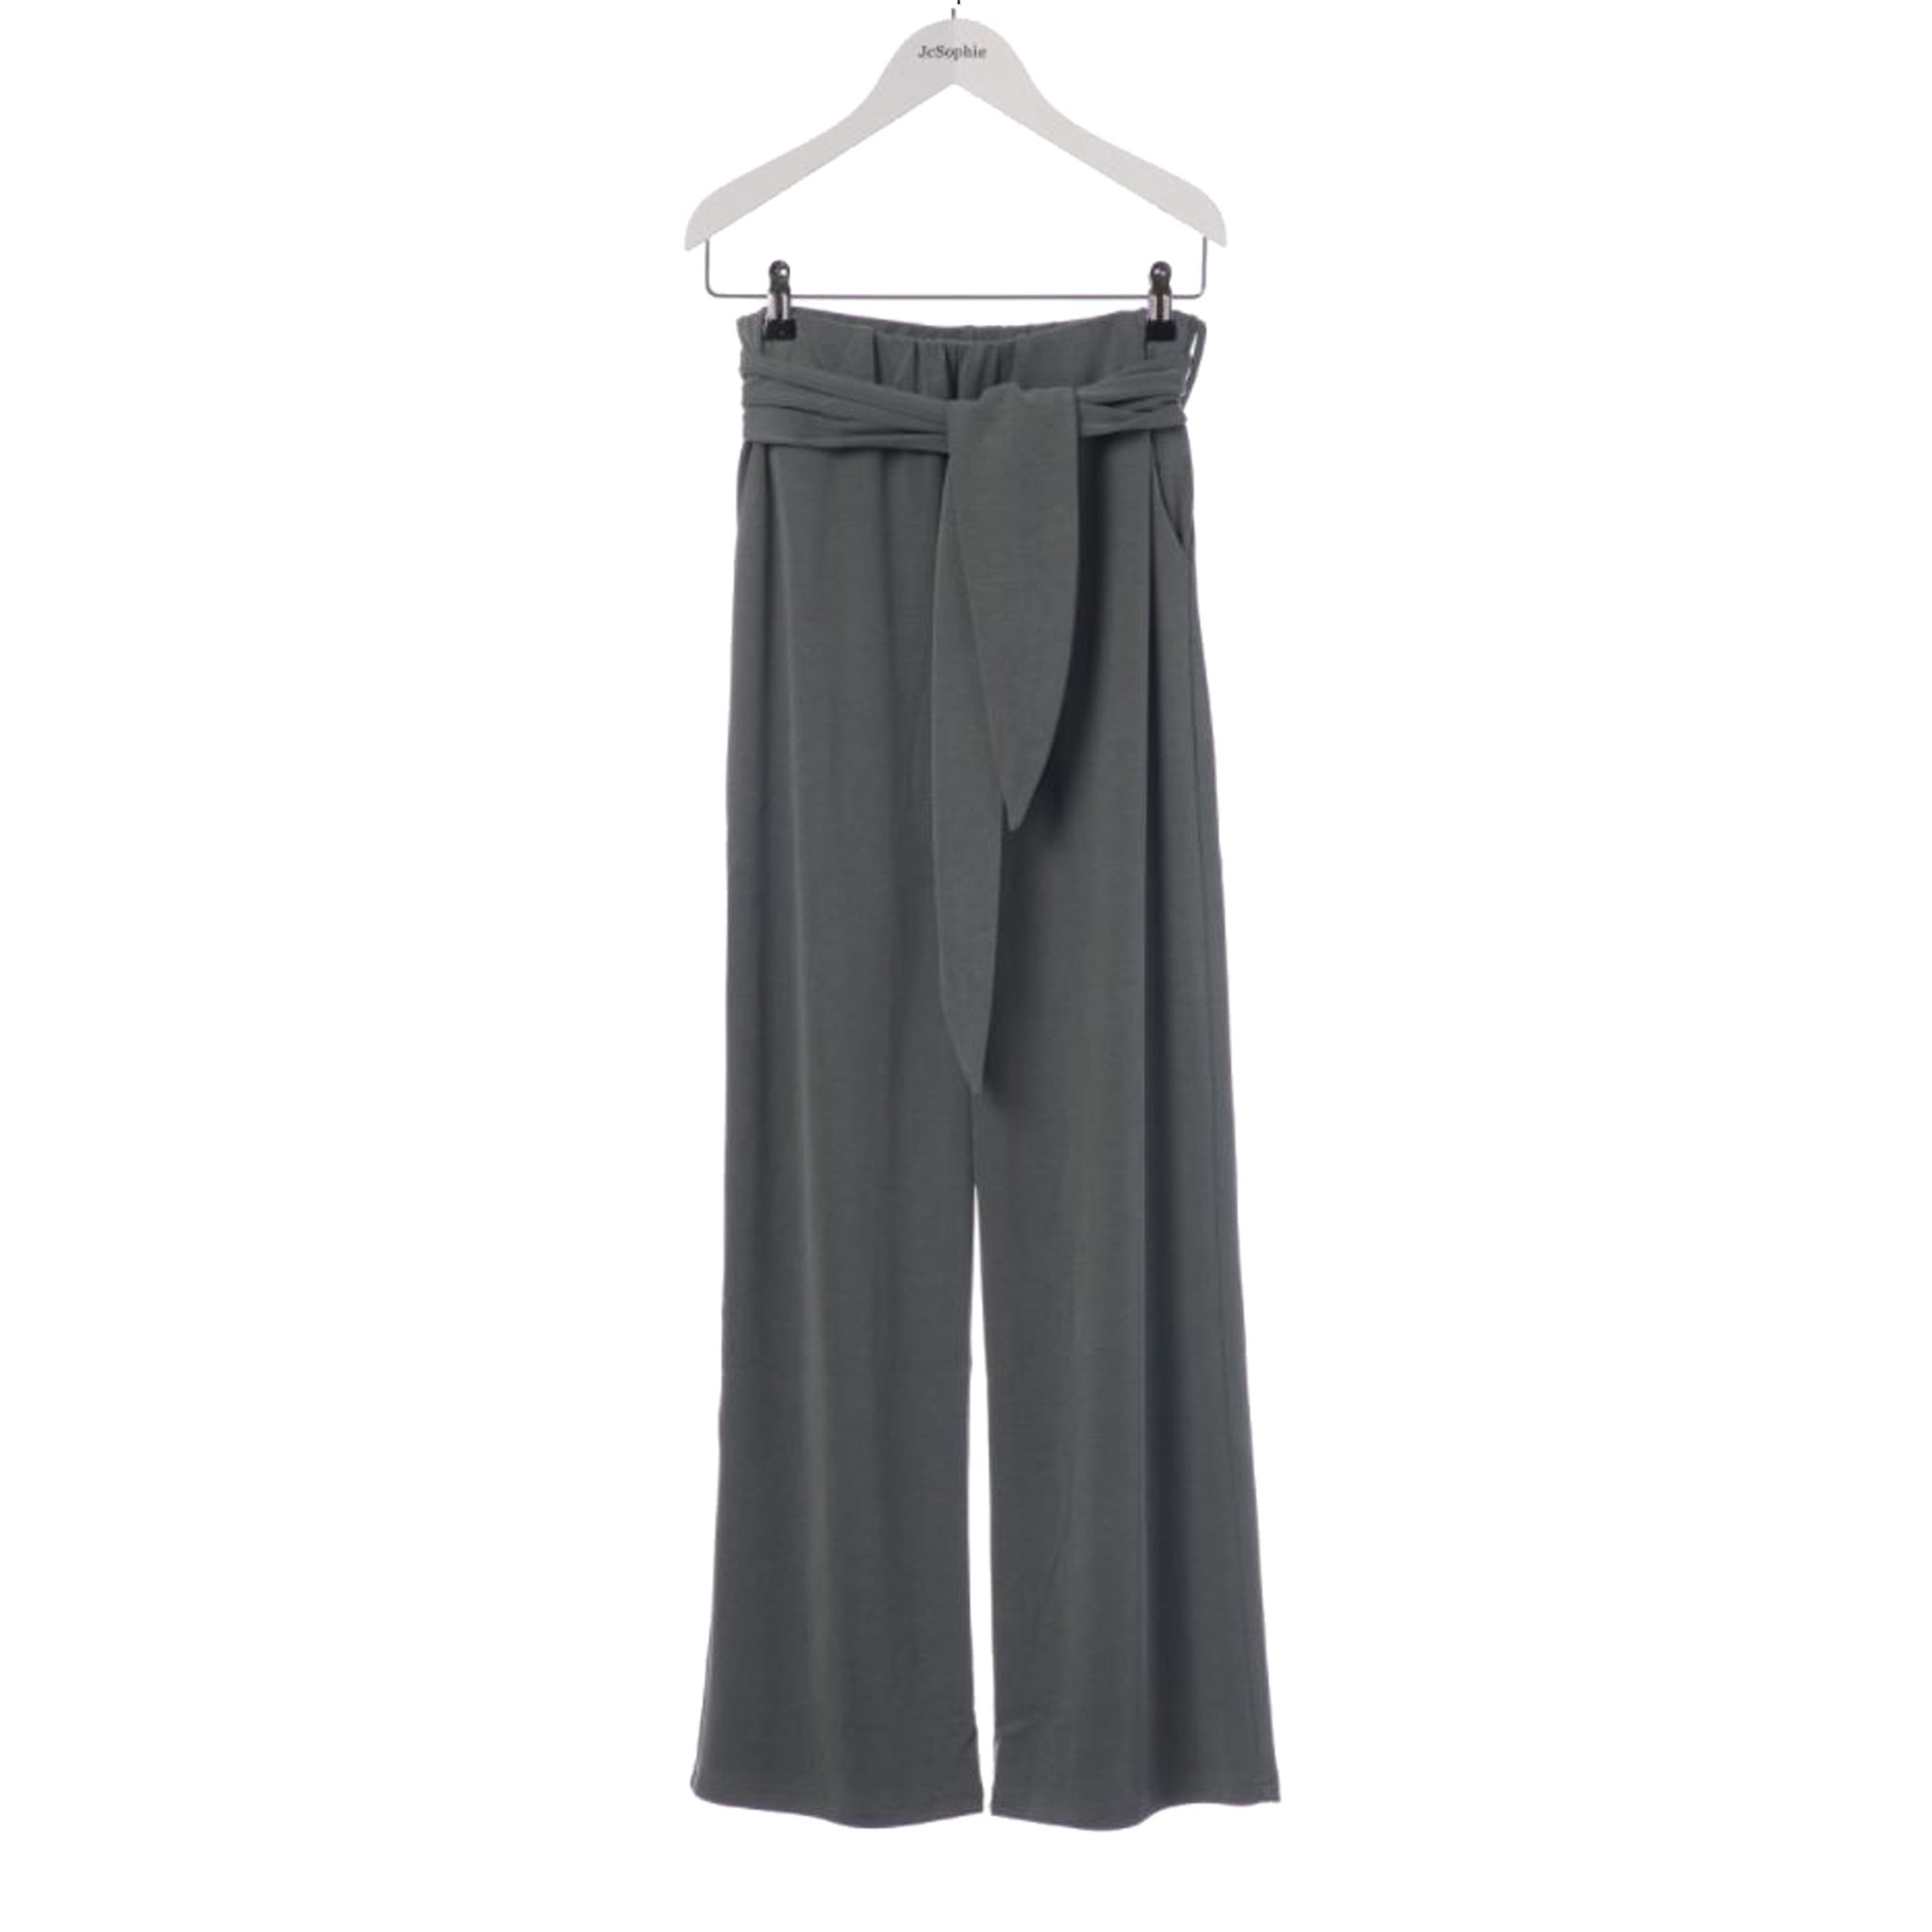 Gustava trousers Jc SOPHIE